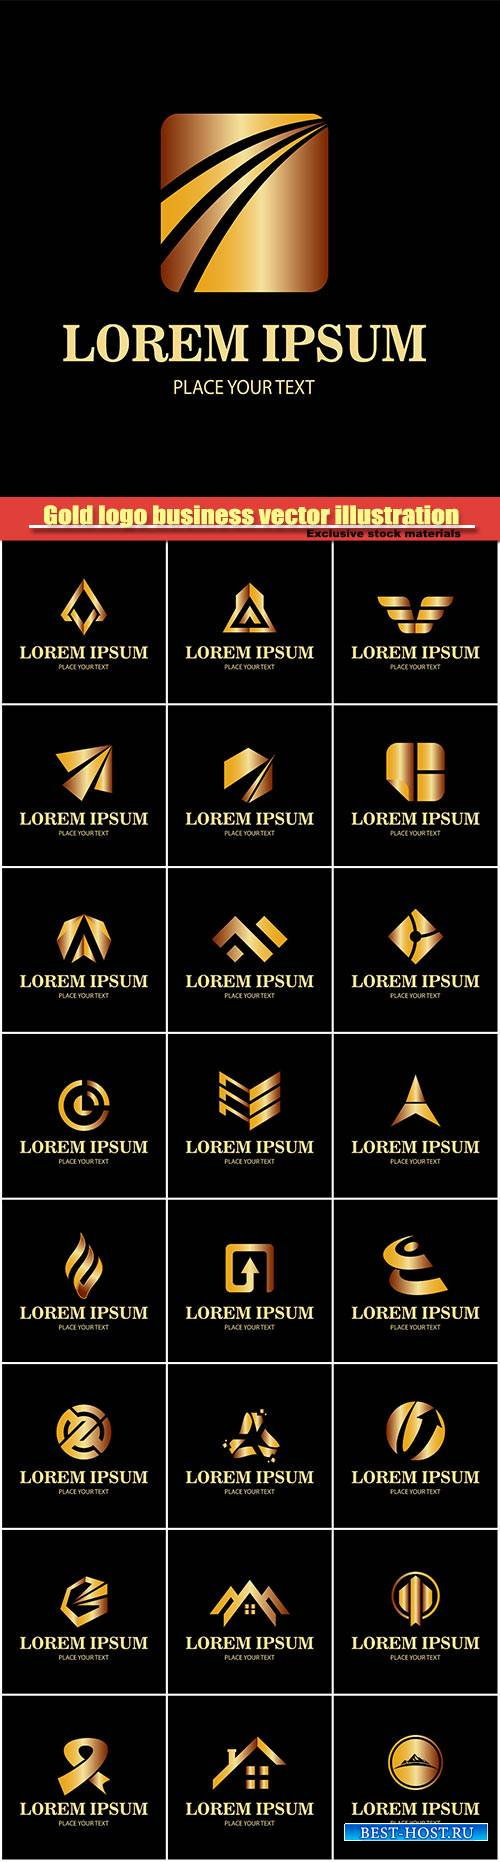 Gold logo business, vector illustration #4